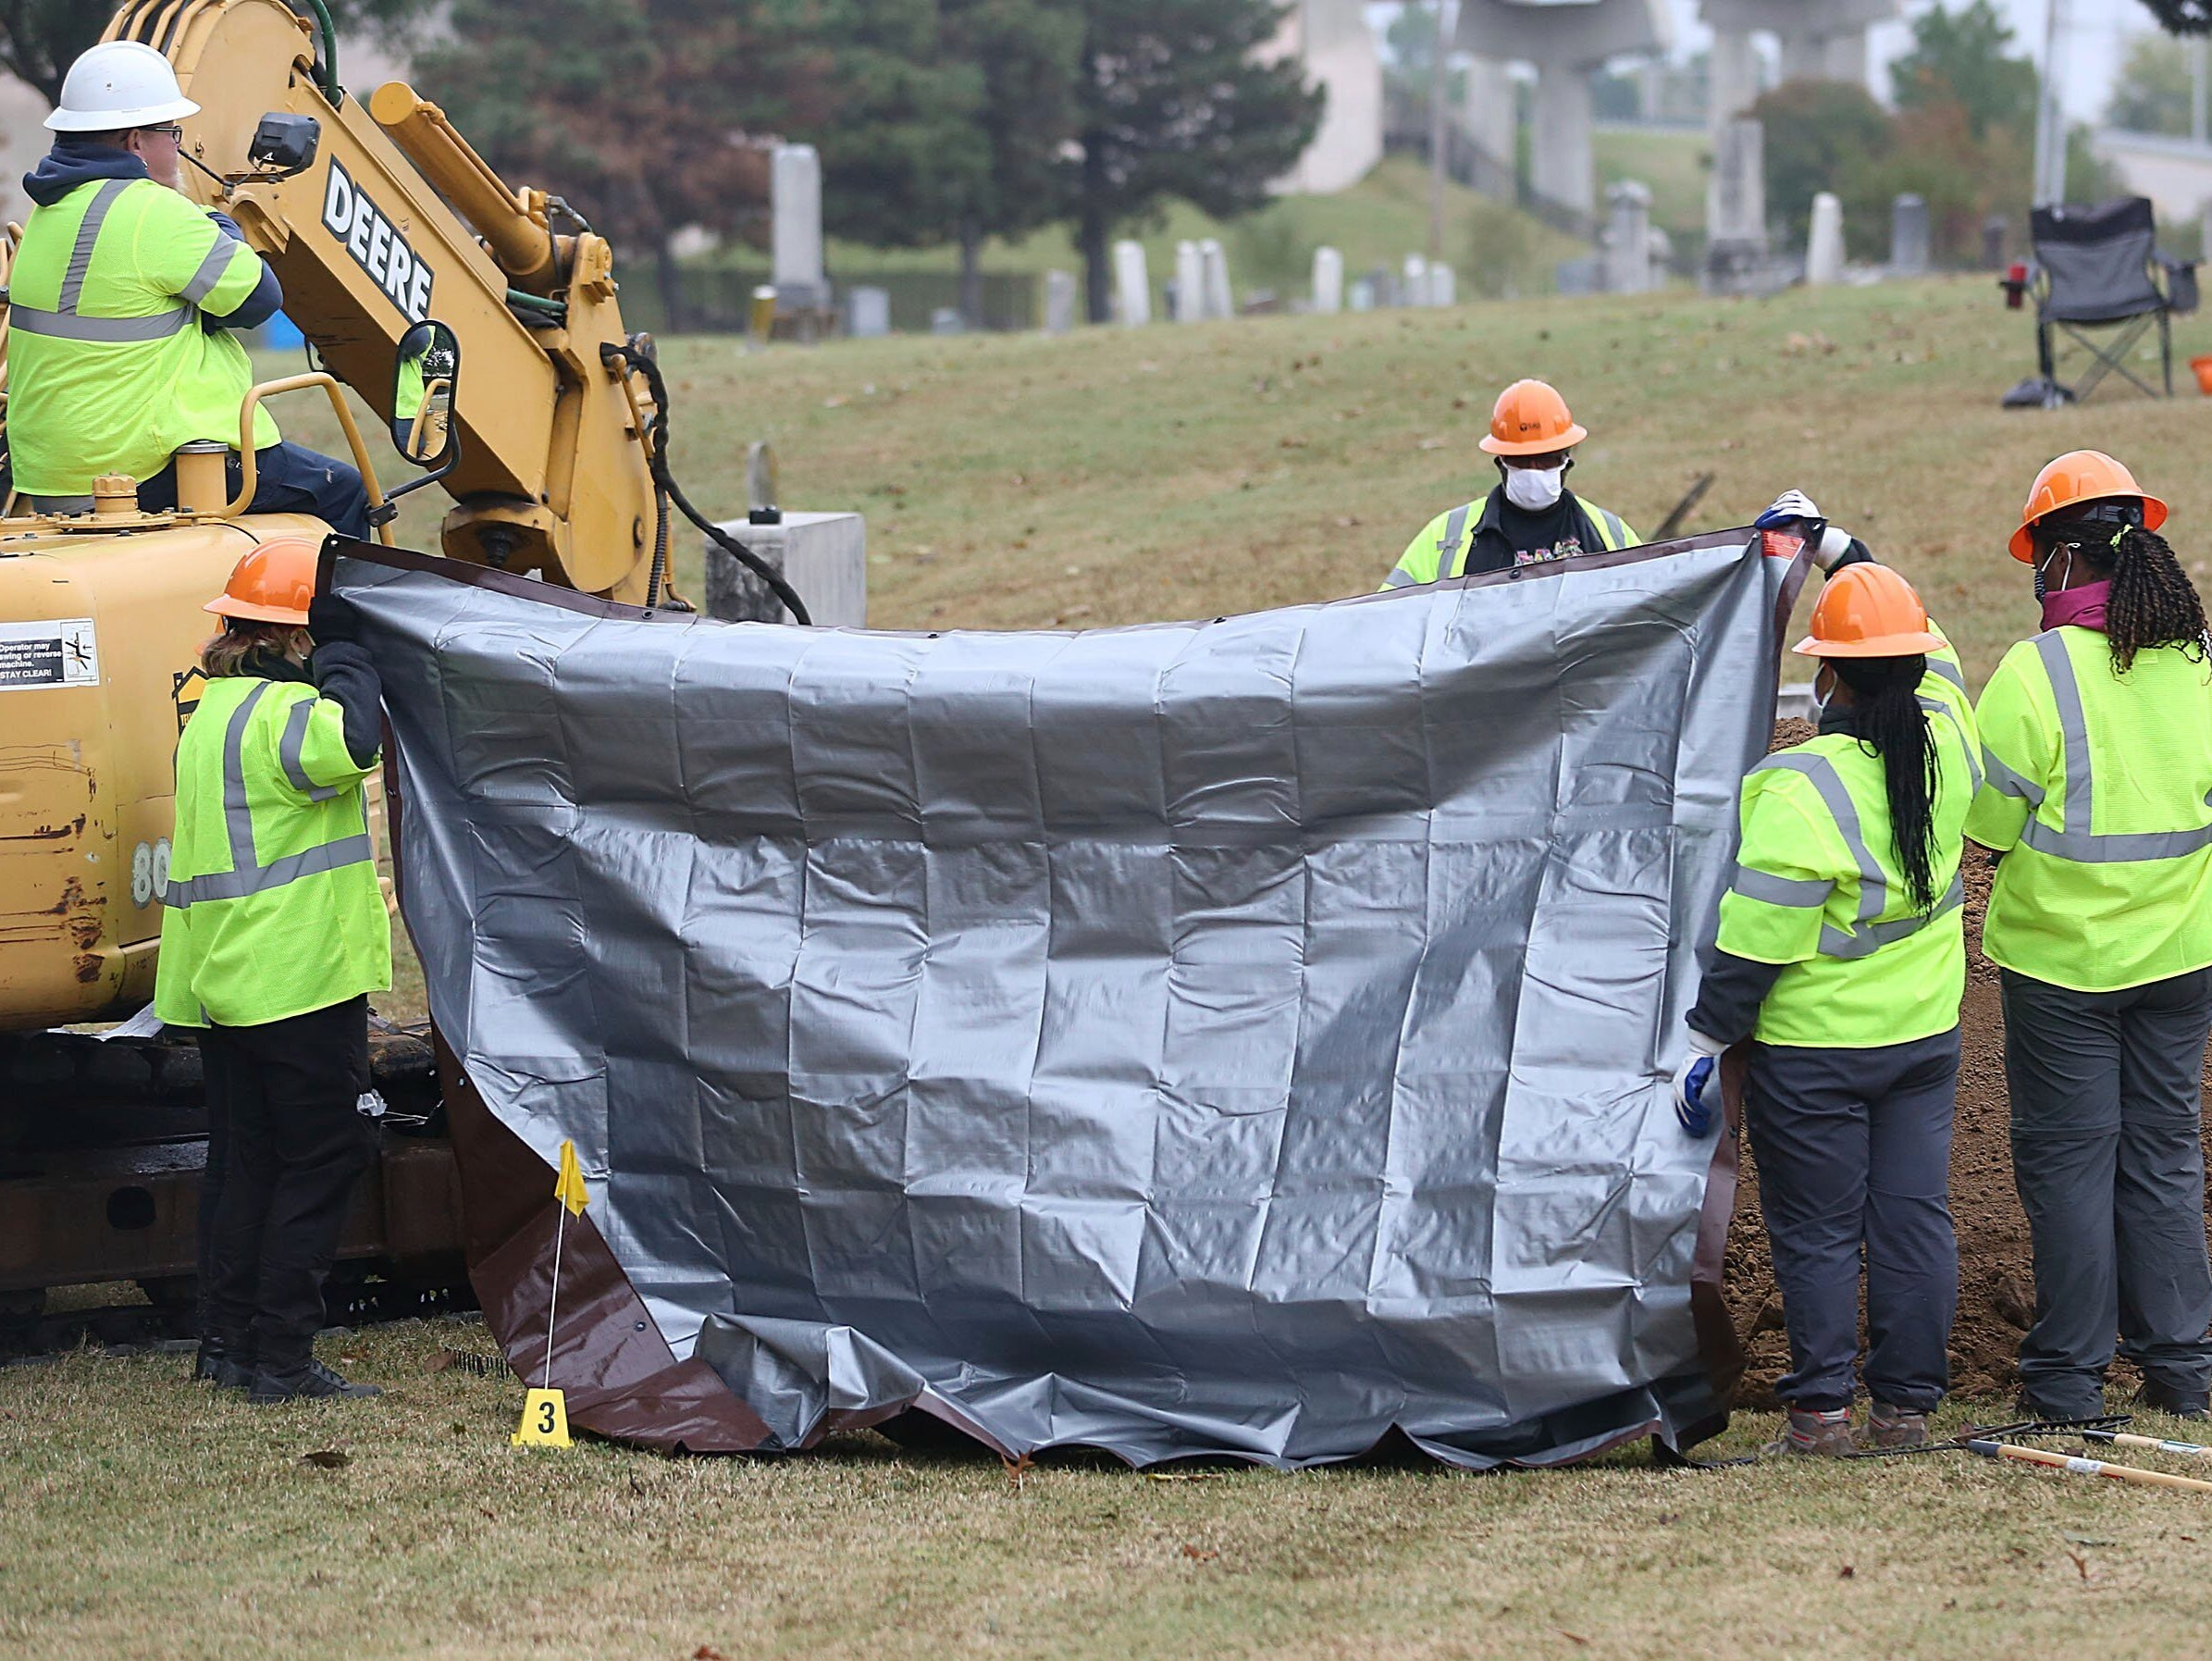 Mass grave found in search for 1921 Tulsa race massacre victims - independent